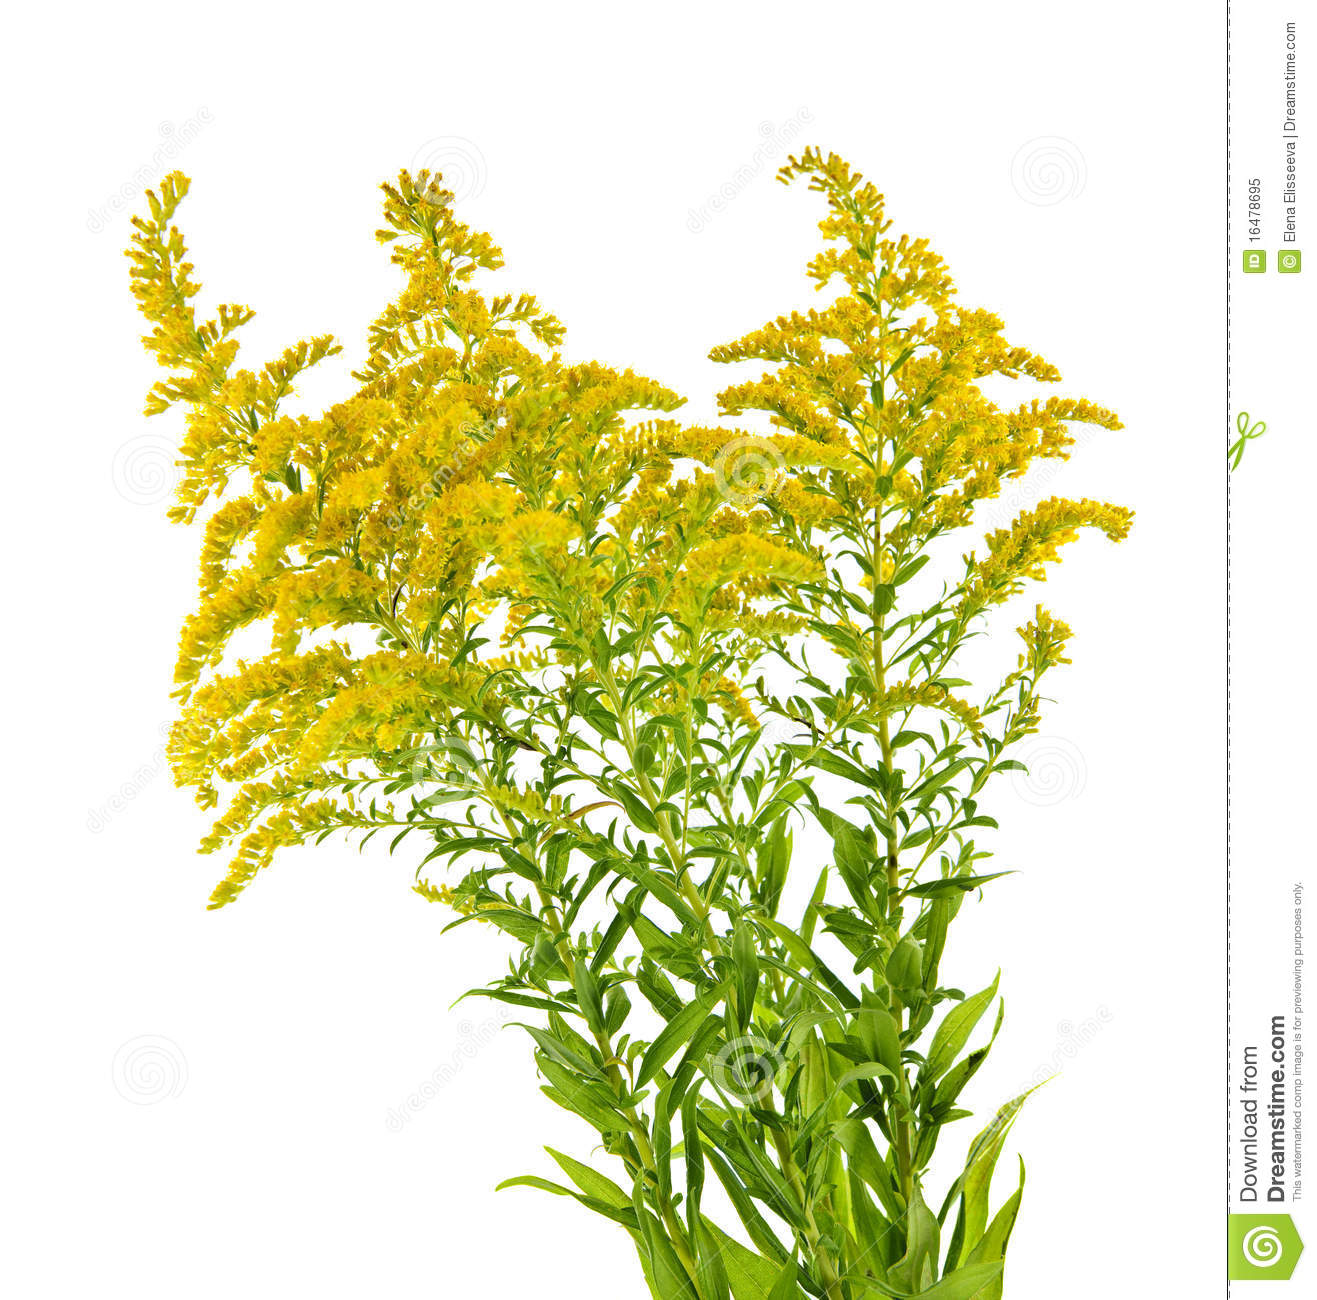 Goldenrod Plant Royalty Free Stock Photo - Image: 16478695